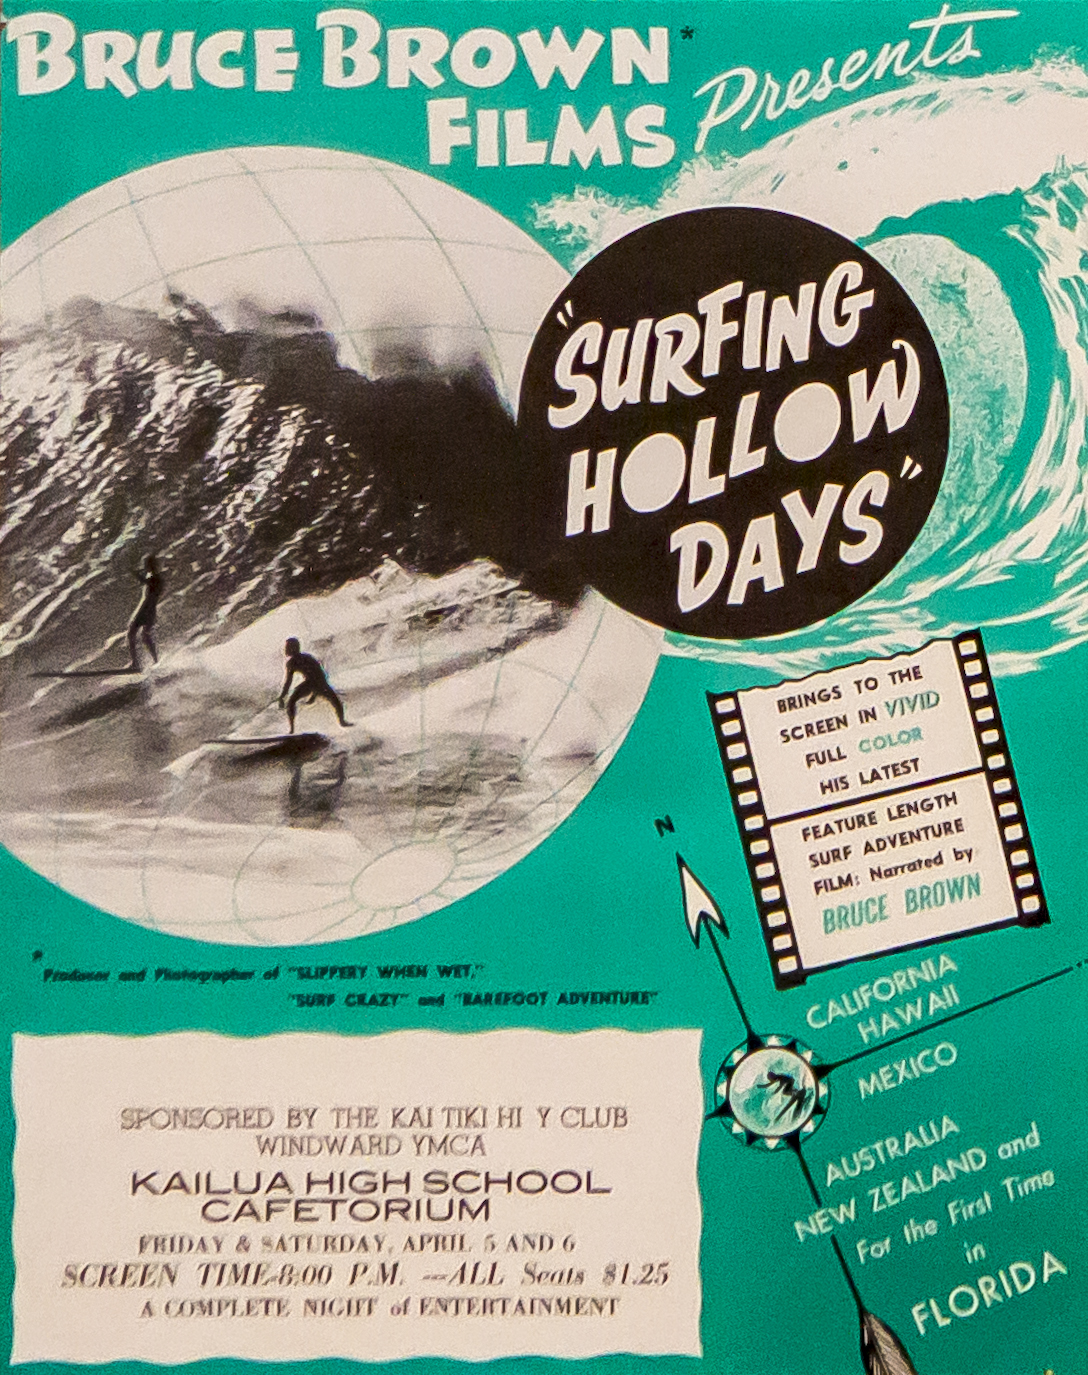 62SurfingHollowDays4